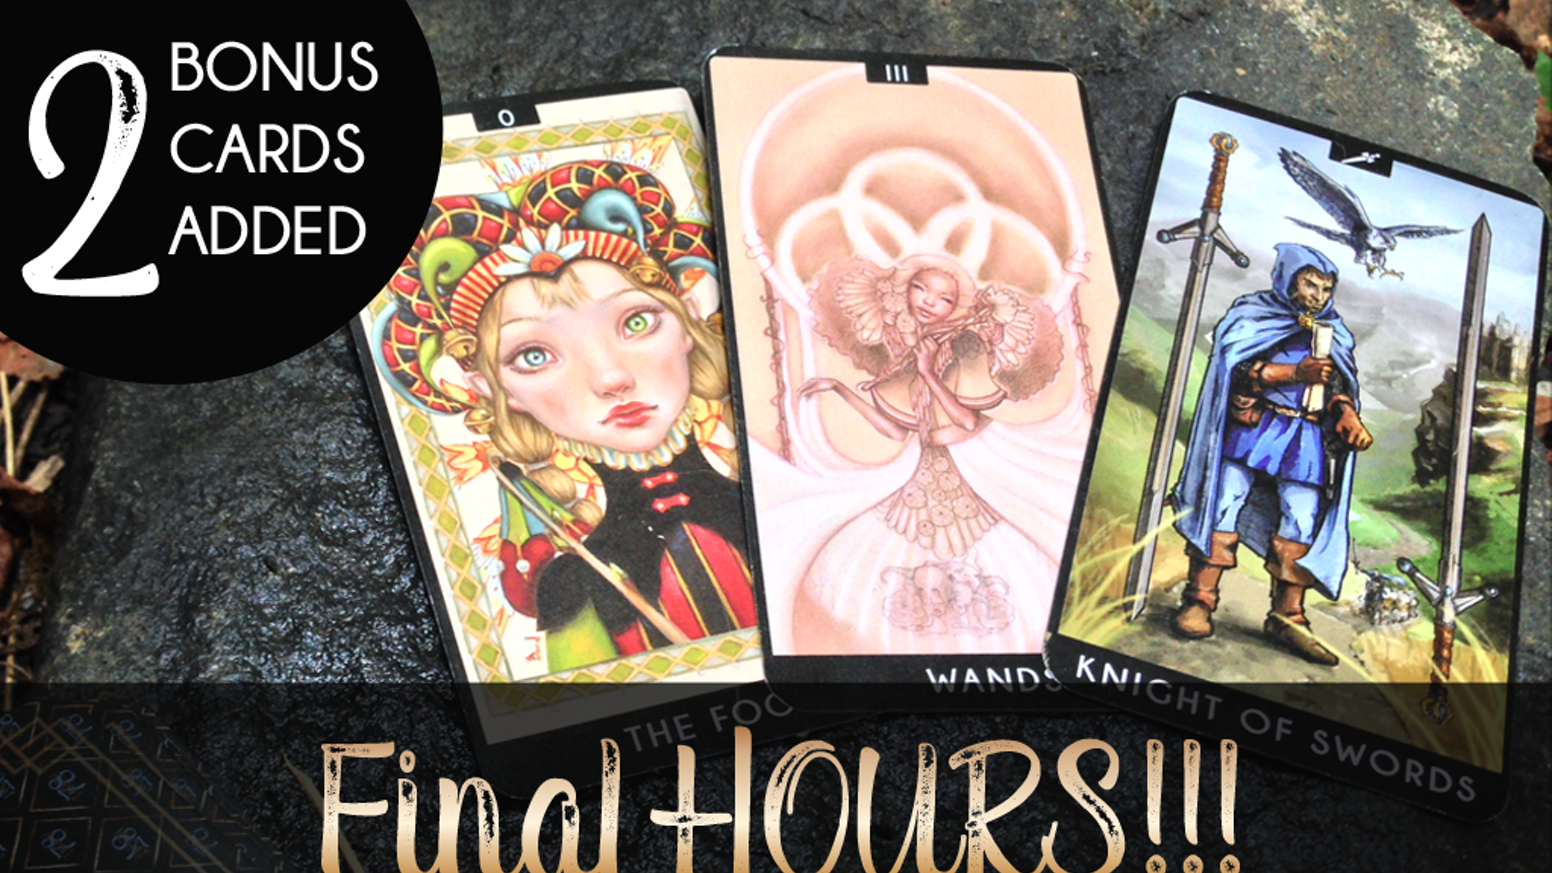 78 talented artists collaborated across the globe - to create a one-of-a-kind, fully functional Tarot deck. Each artist was assigned a card from the Major or Minor Arcana.